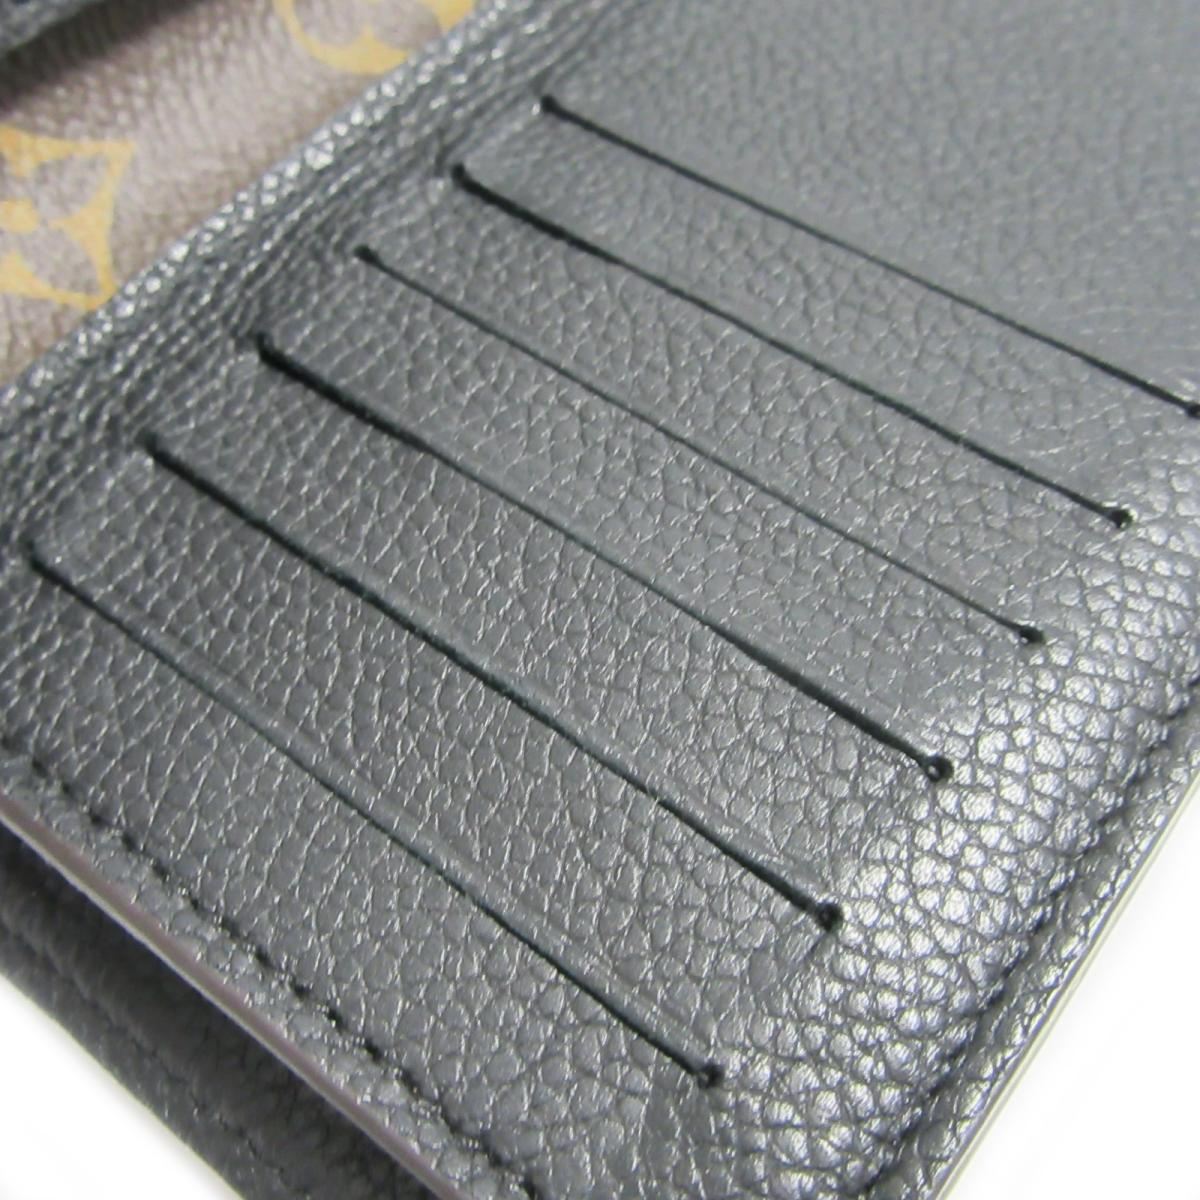 best website a3aaf ced98 Auth LOUIS VUITTON Portefeuille Pallas Bi-fold Wallet Purse M60990 Monogram  leather